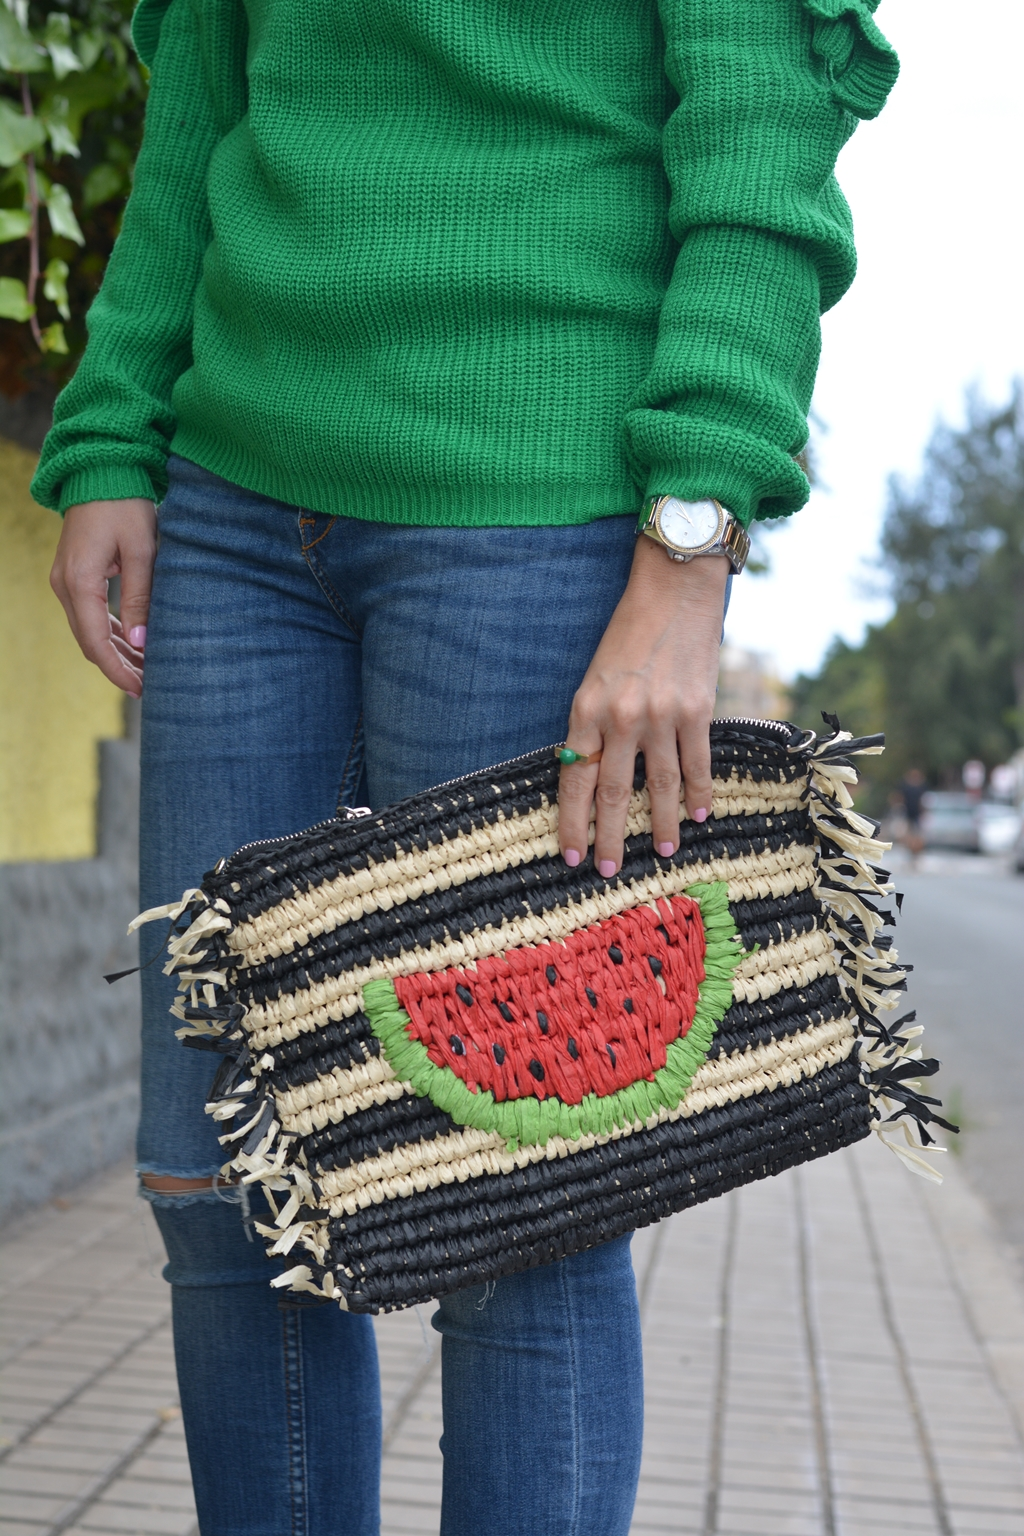 watermelon-clutch-outfit-parfois